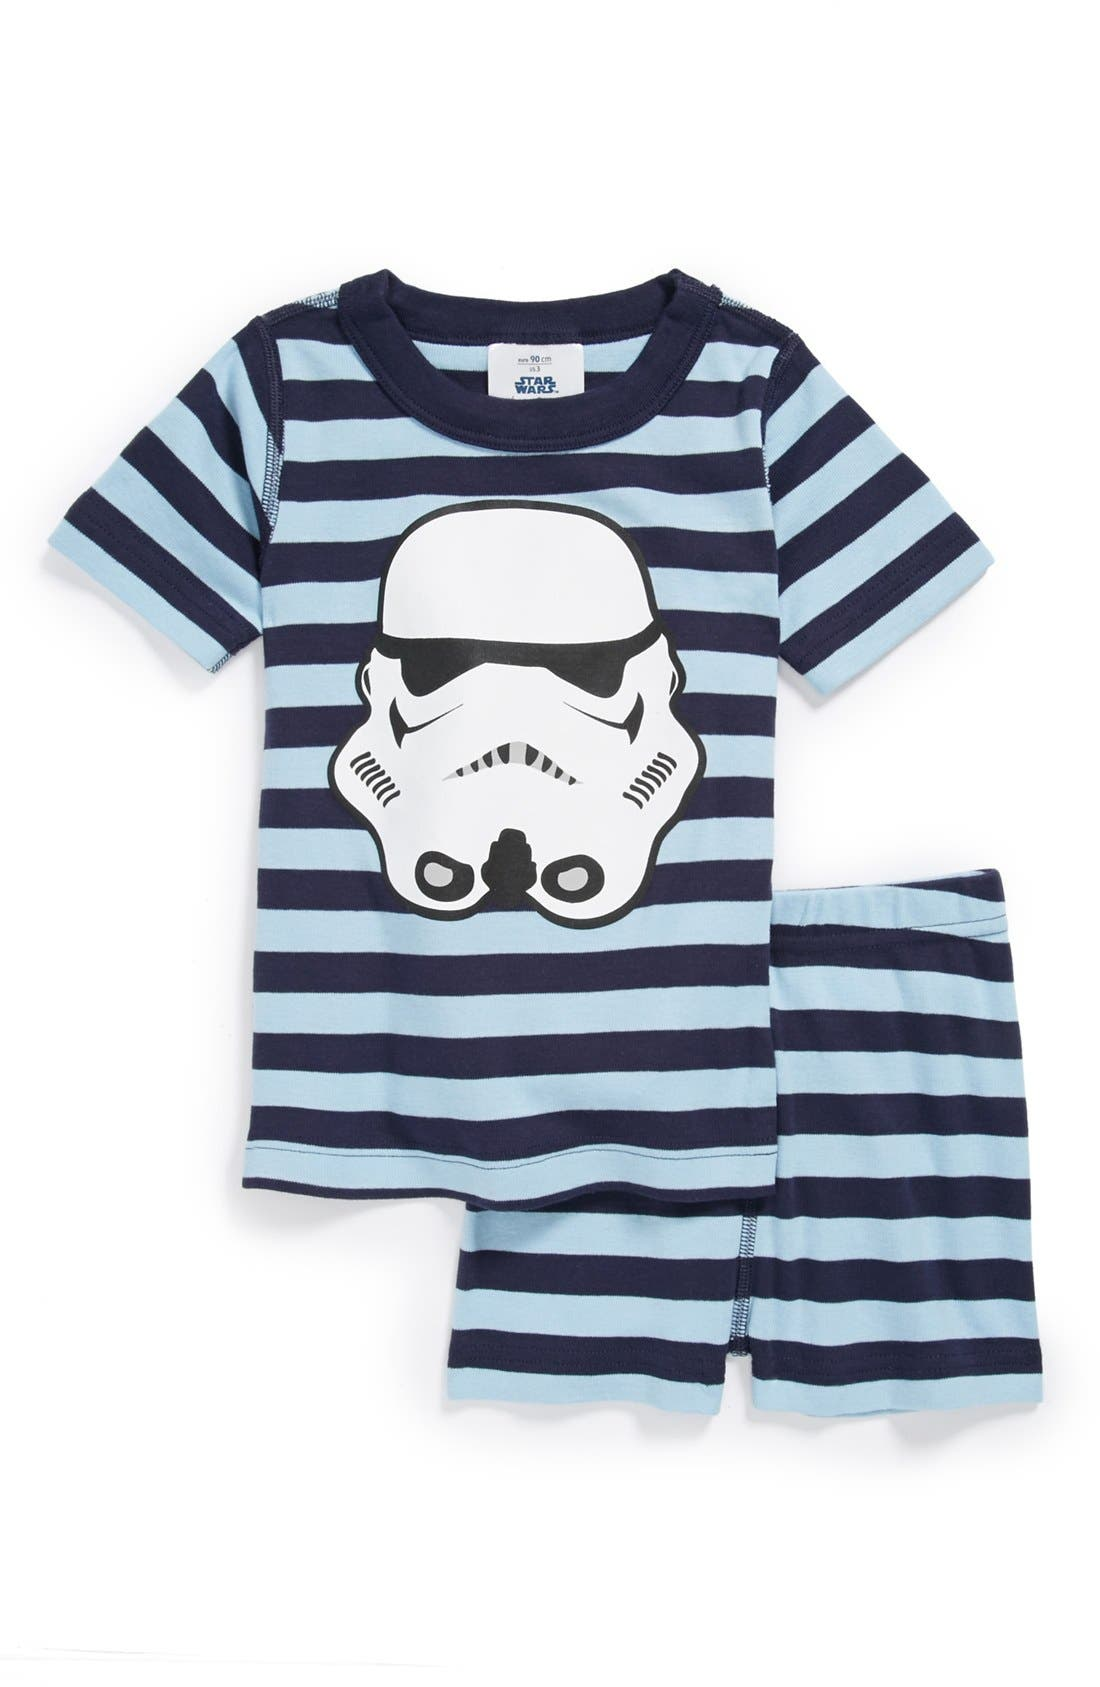 Main Image - Hanna Andersson Two Piece Fitted Pajamas (Toddler Boys)